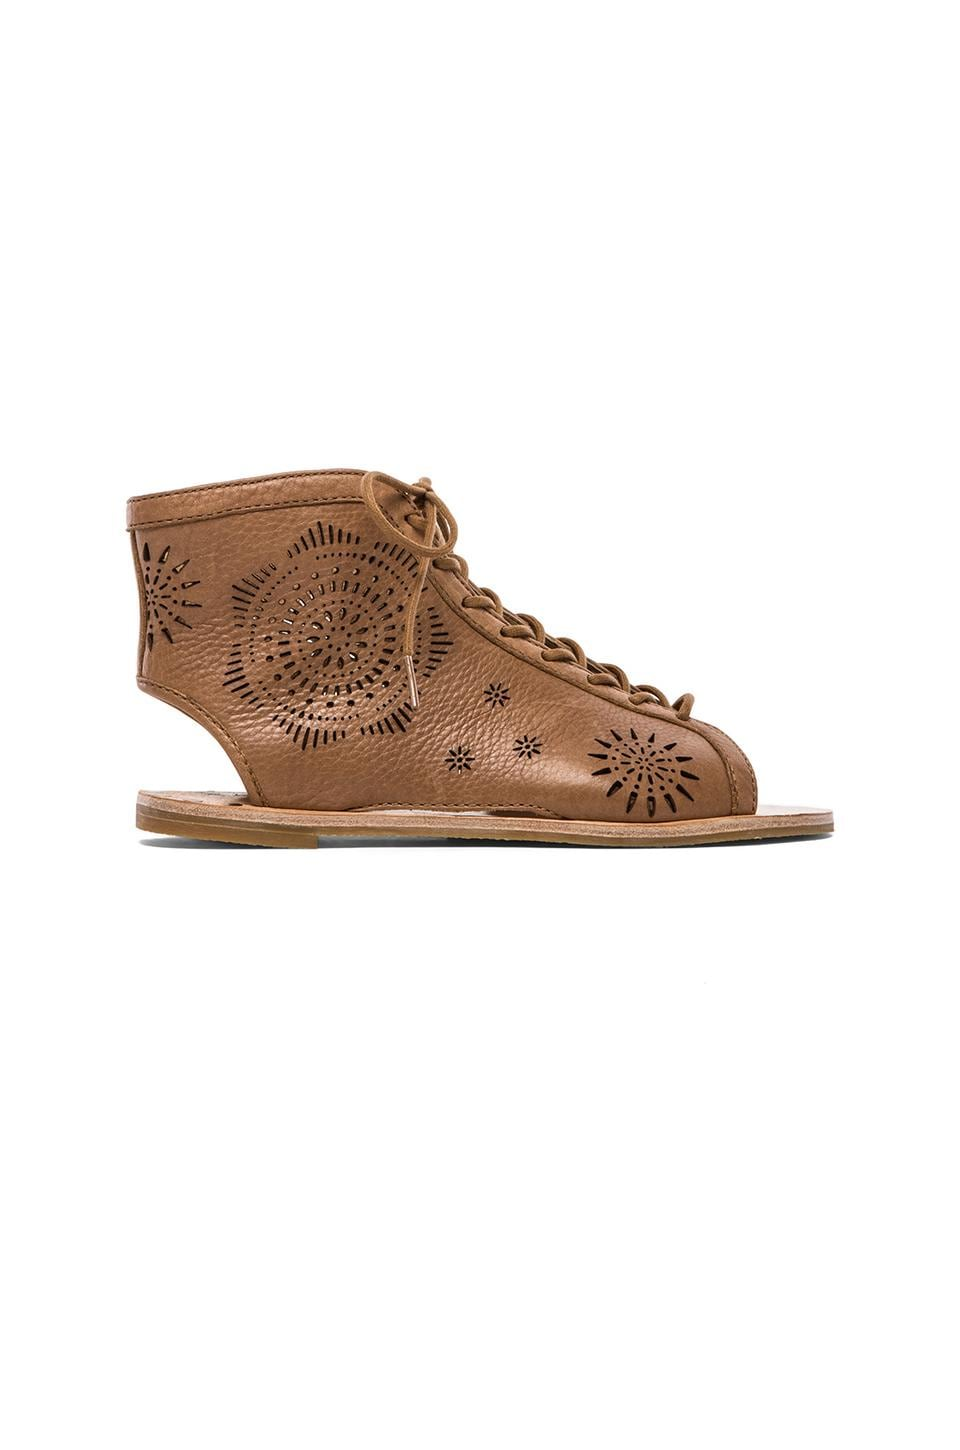 Koolaburra Fion Laser Gladiator in Chestnut